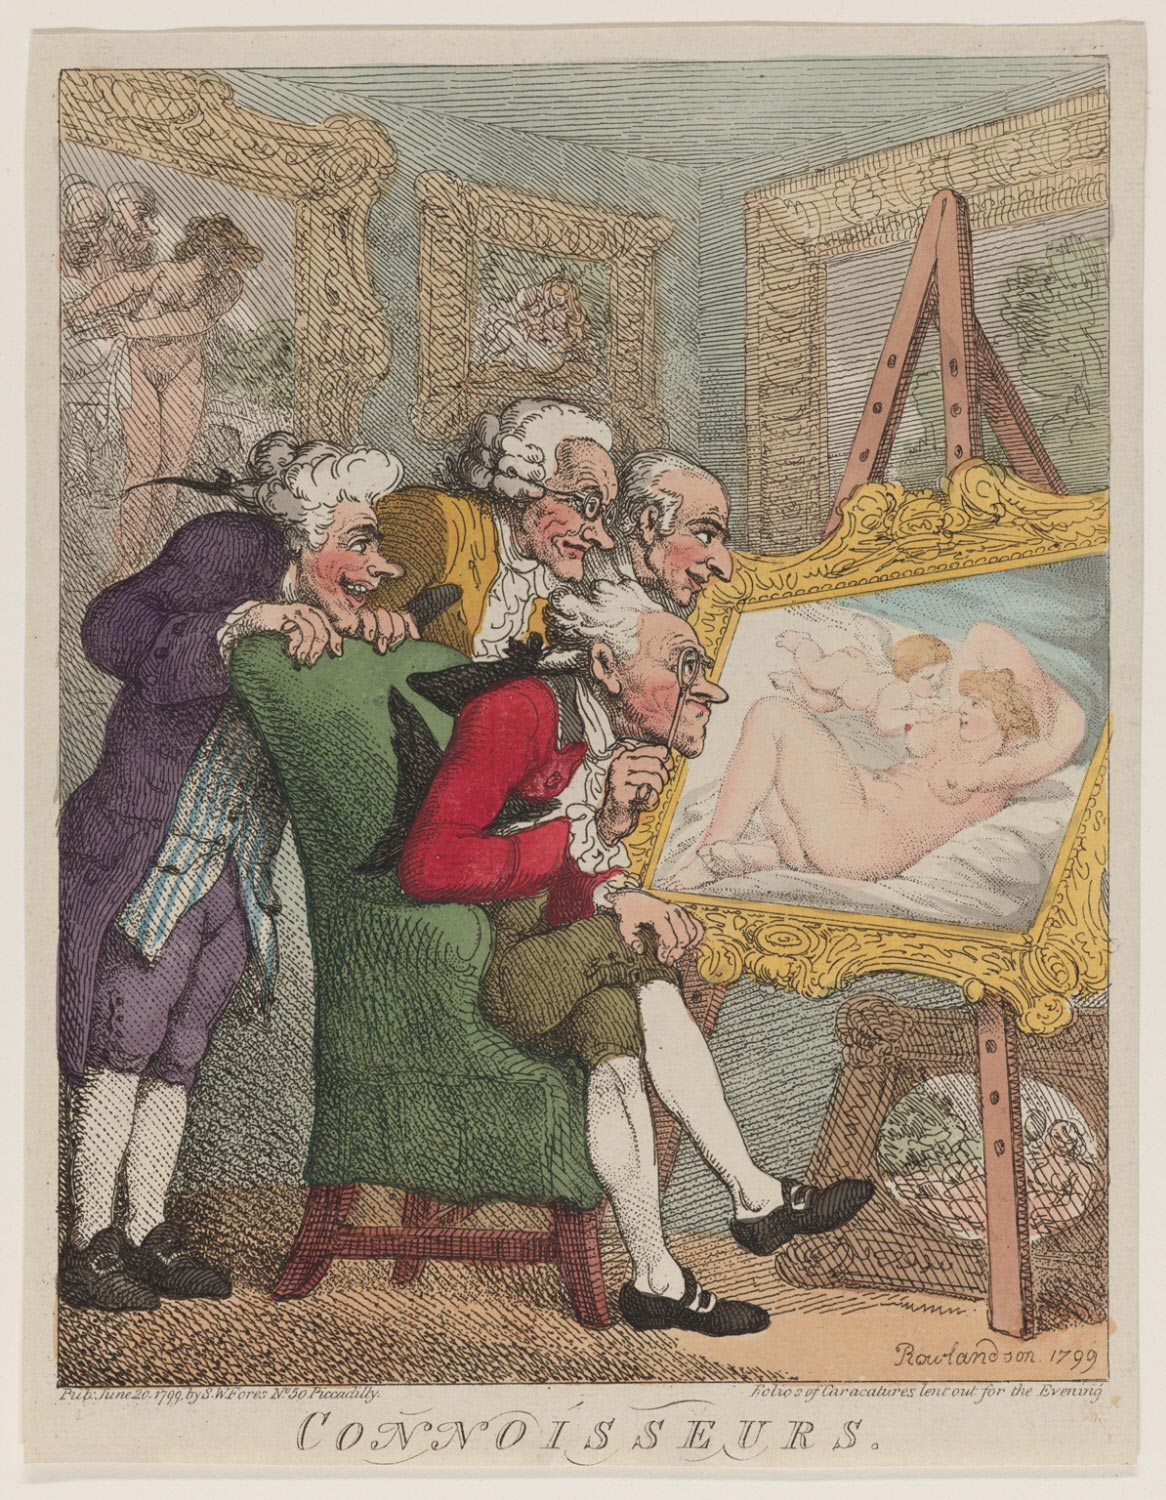 Connoisseurs, 1799, by Thomas Rowlandson. Hand-colored etching. Given to the Philadelphia Museum of Art by Carl Zigrosser, 1974.